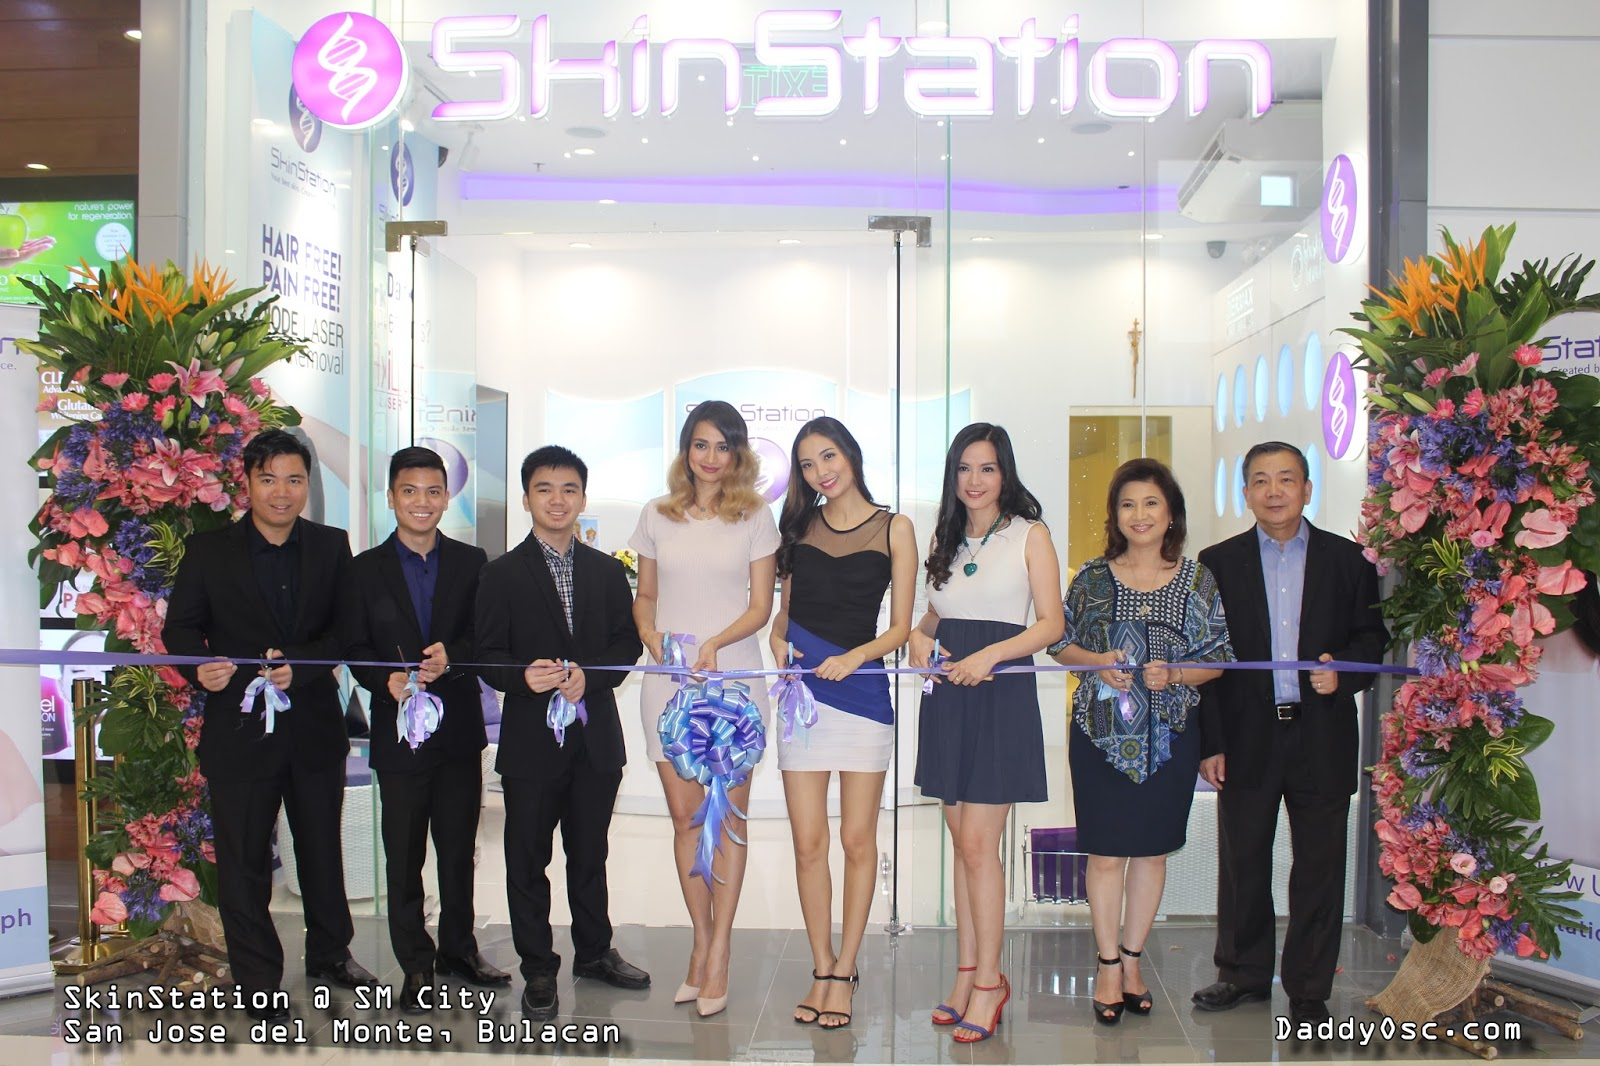 Stupendous Skinstation Opens At Sm City San Jose Del Monte Bulacan Download Free Architecture Designs Scobabritishbridgeorg